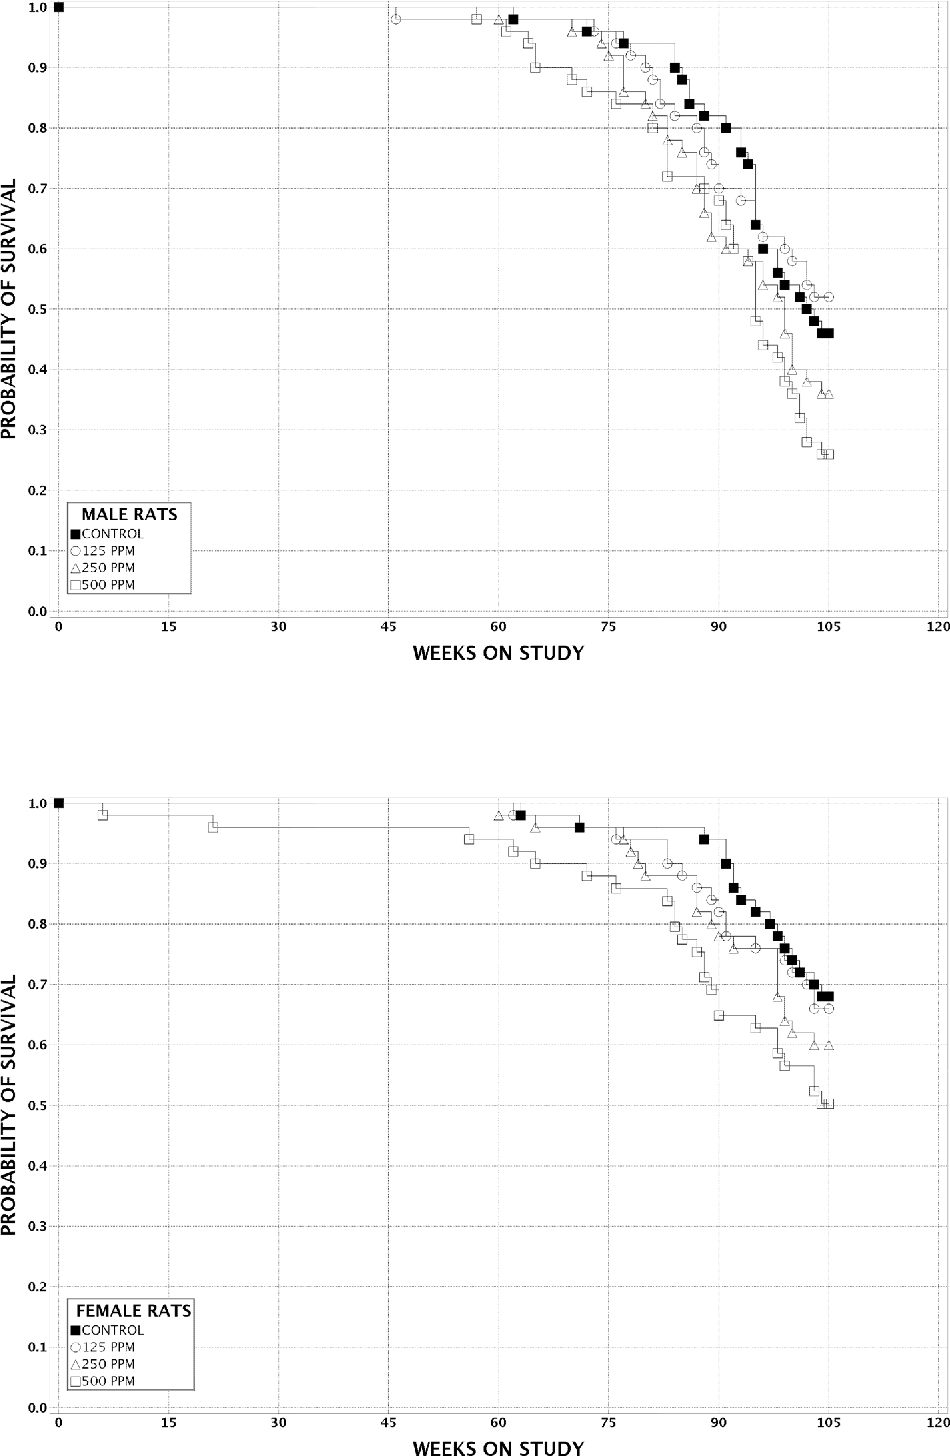 FIGURE 4 Kaplan-Meier Survival Curves for Rats Exposed to 1-Bromopropane by Inhalation for 2 Years